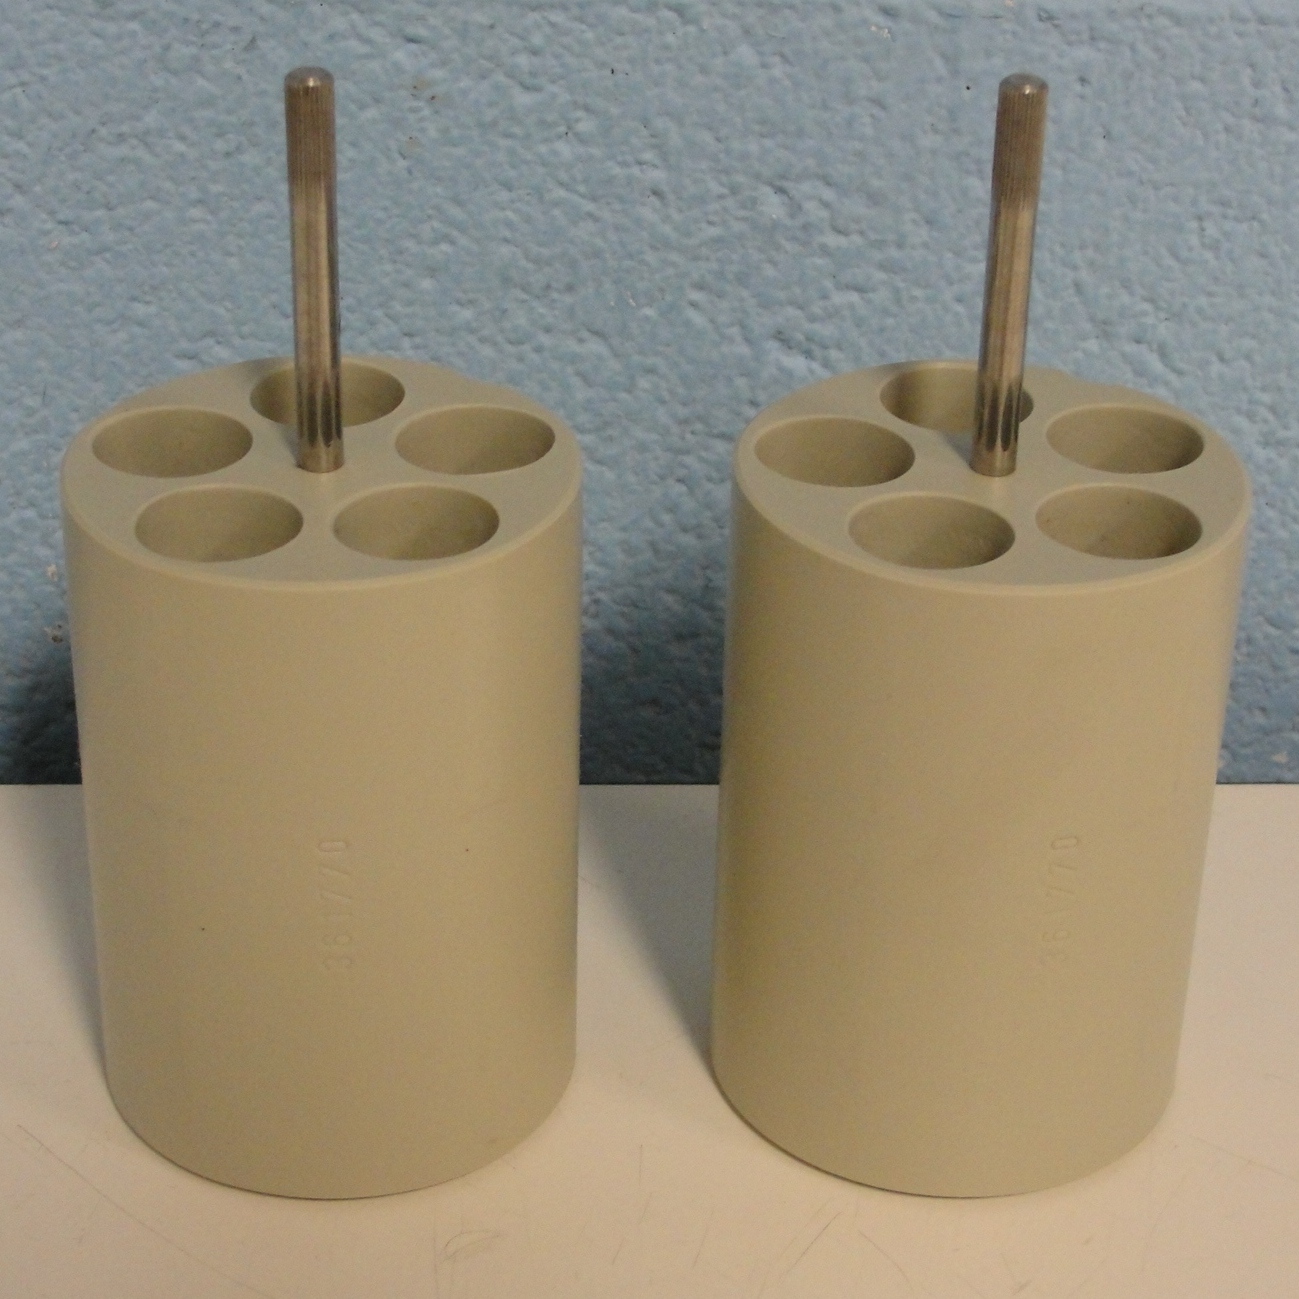 Beckman Coulter Set of (2) 5 tube 17.5MM X 76MM Adapters for S4180 Bucket Rotor Image